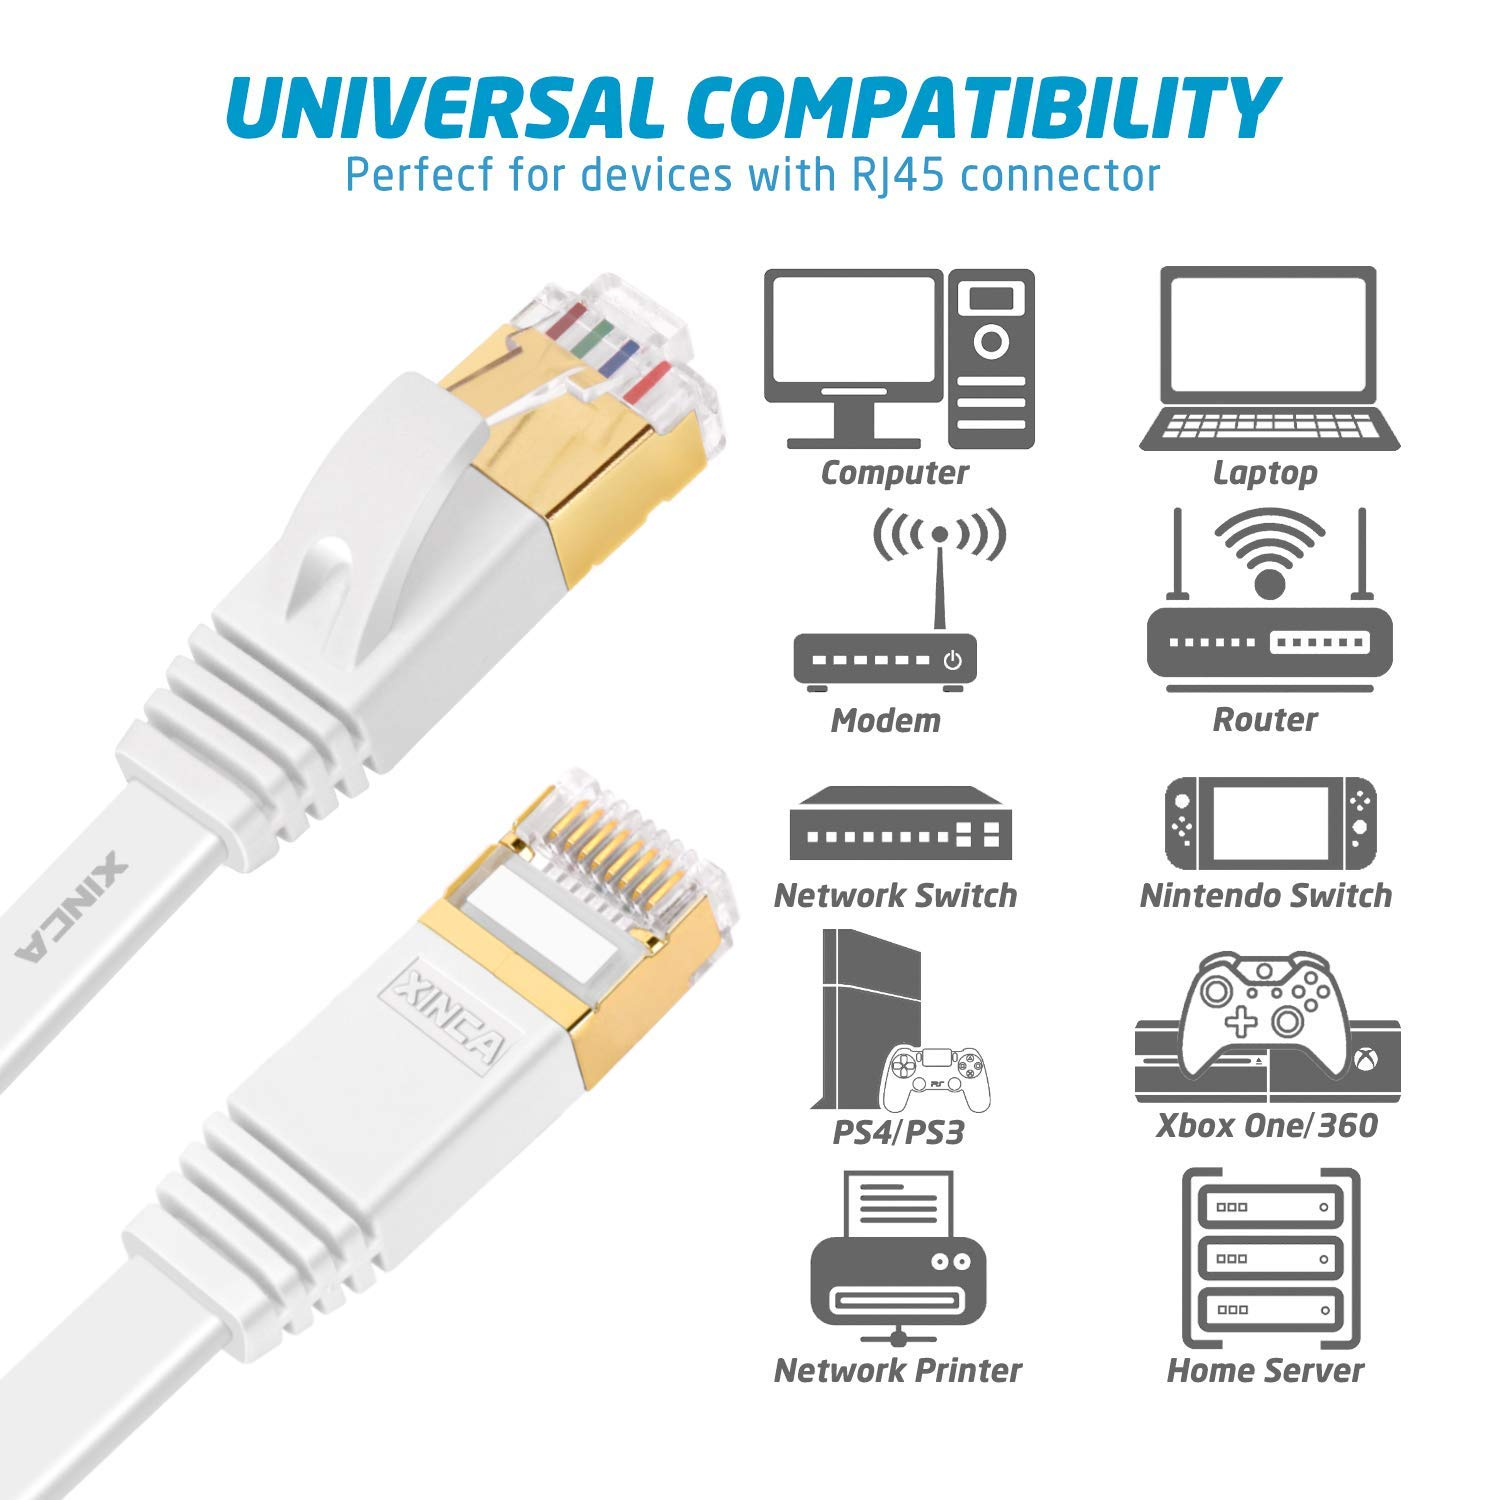 Renewed Cat 7 Flat Ethernet Cable 50ft White,High Speed 10GB Shielded LAN Internet Network Cable-XINCA Ethernet Patch Computer Cable with Snagless Rj45 Connectors STP 15.2 Meters 50 feet White